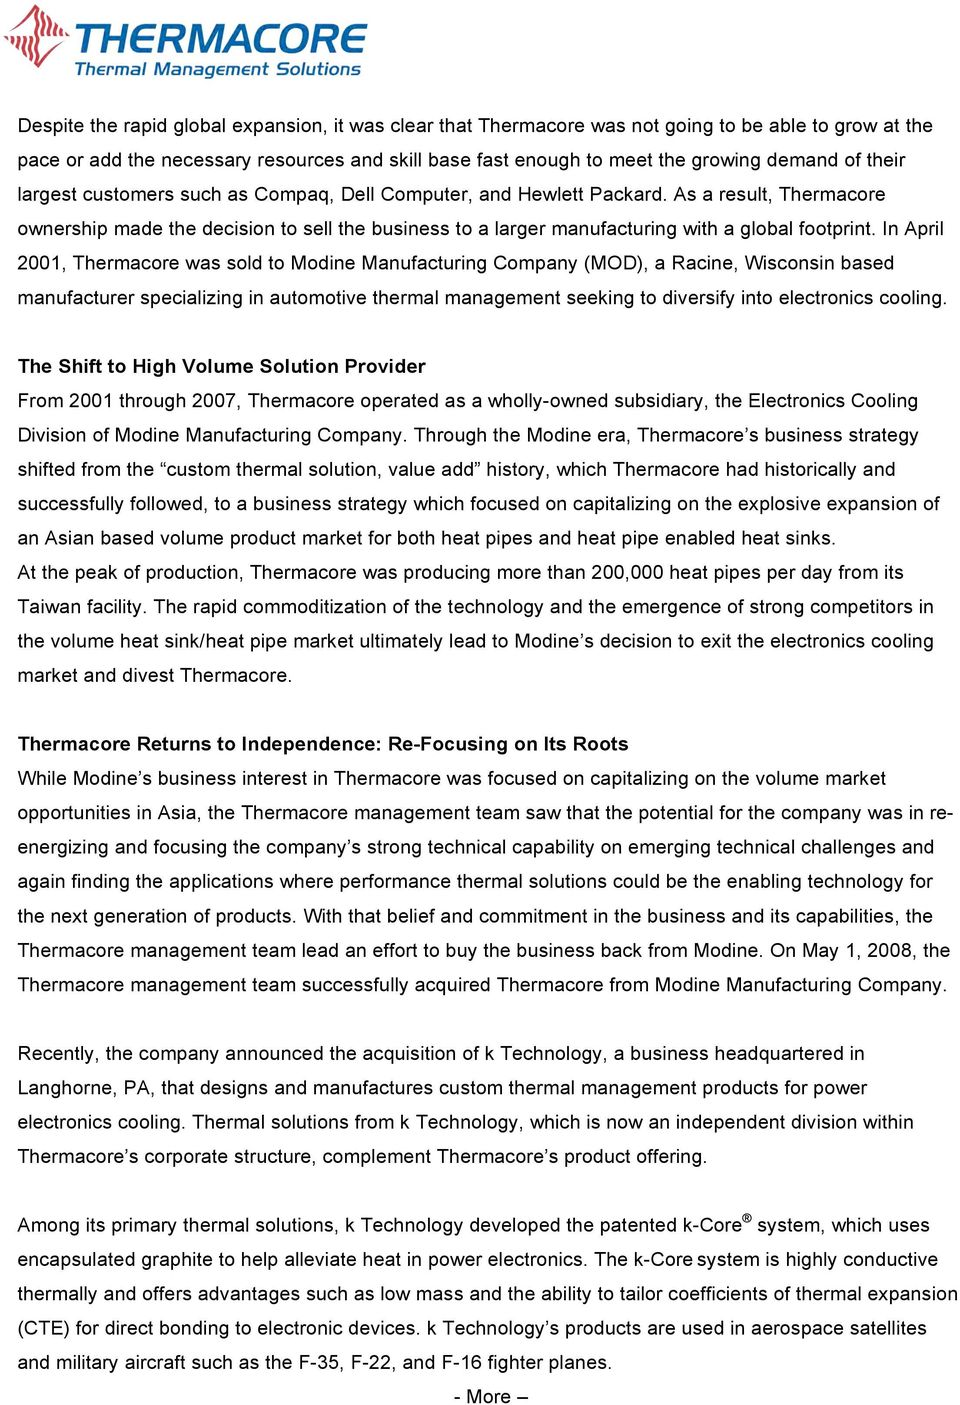 In April 2001, Thermacore was sold to Modine Manufacturing Company (MOD), a Racine, Wisconsin based manufacturer specializing in automotive thermal management seeking to diversify into electronics